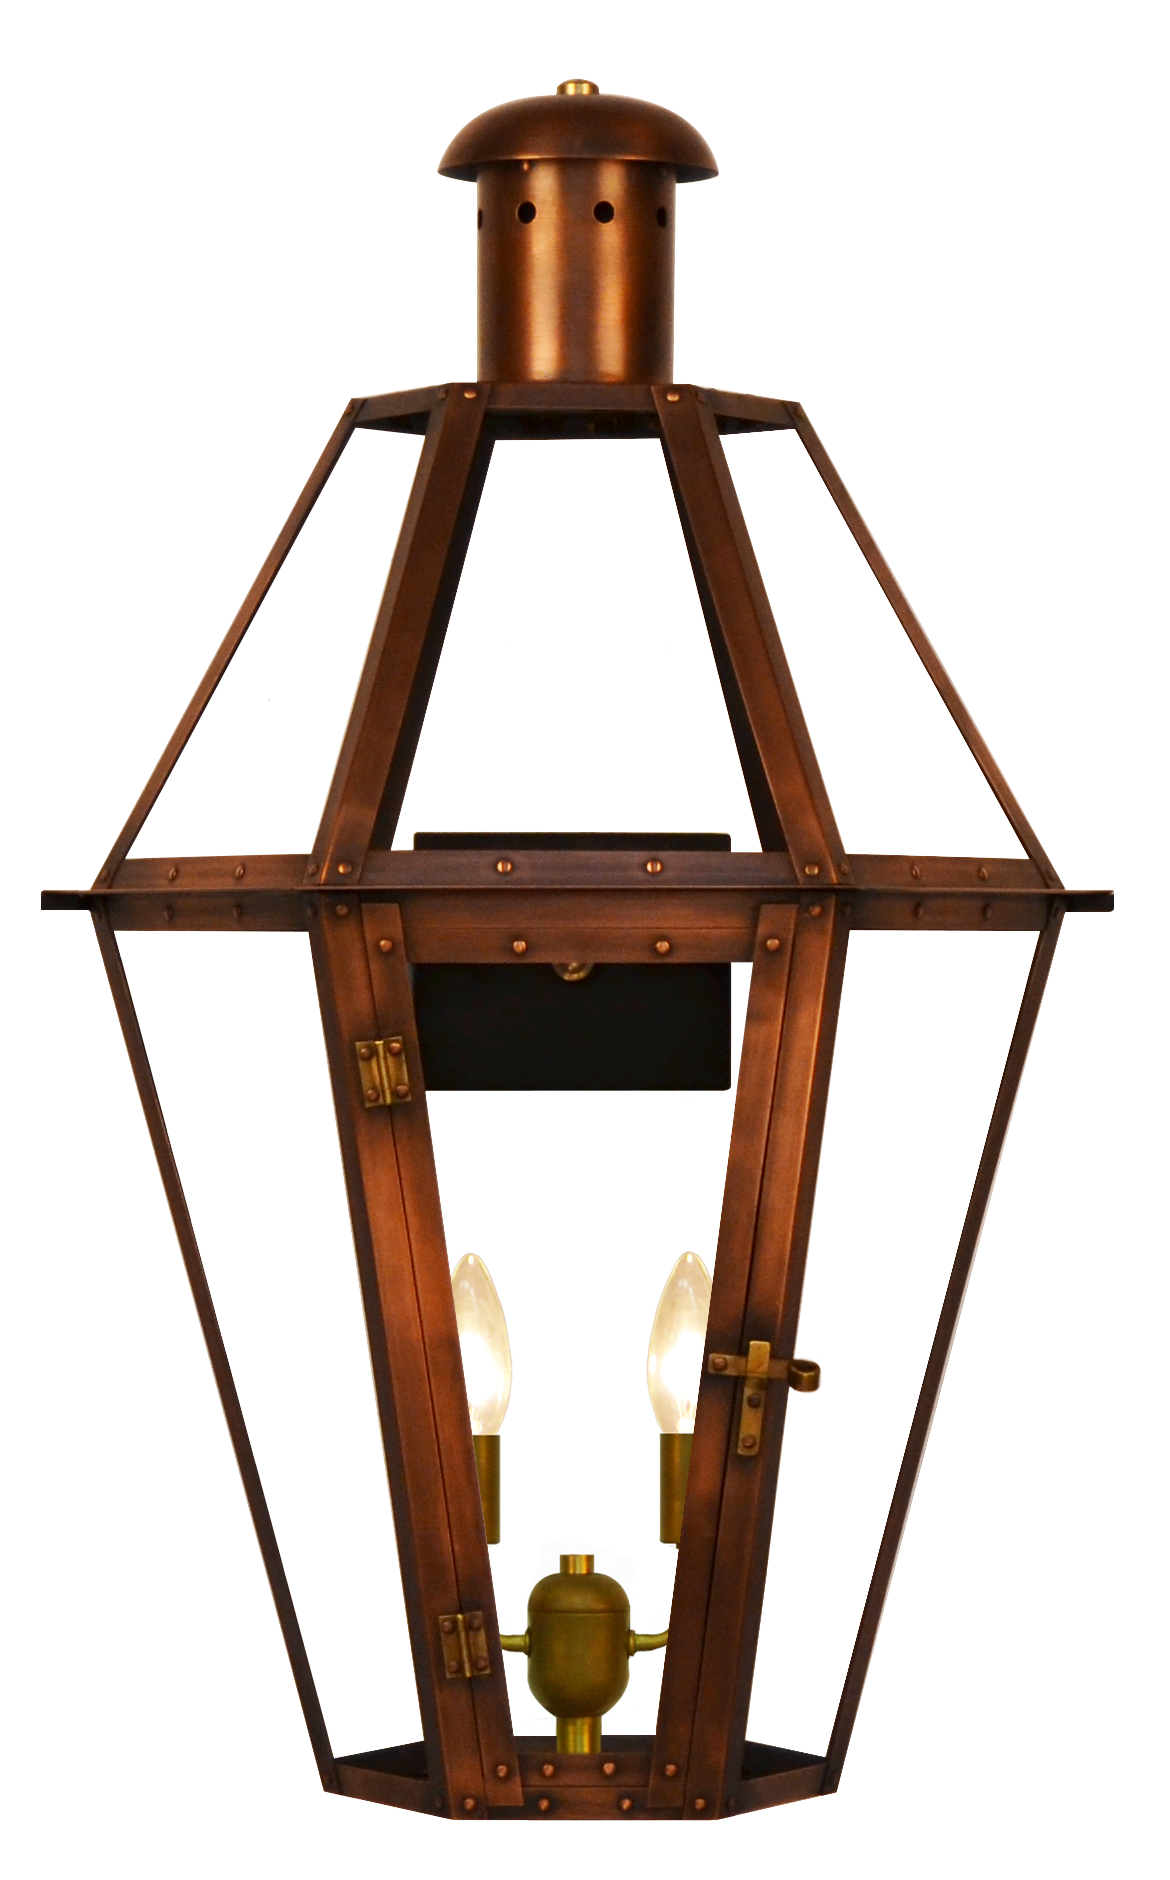 Wall Mount Propane Lamp : The CopperSmith Mount Vernon Gas or Electric Lantern Mount Vernon Gas and Electric LanternMV ...